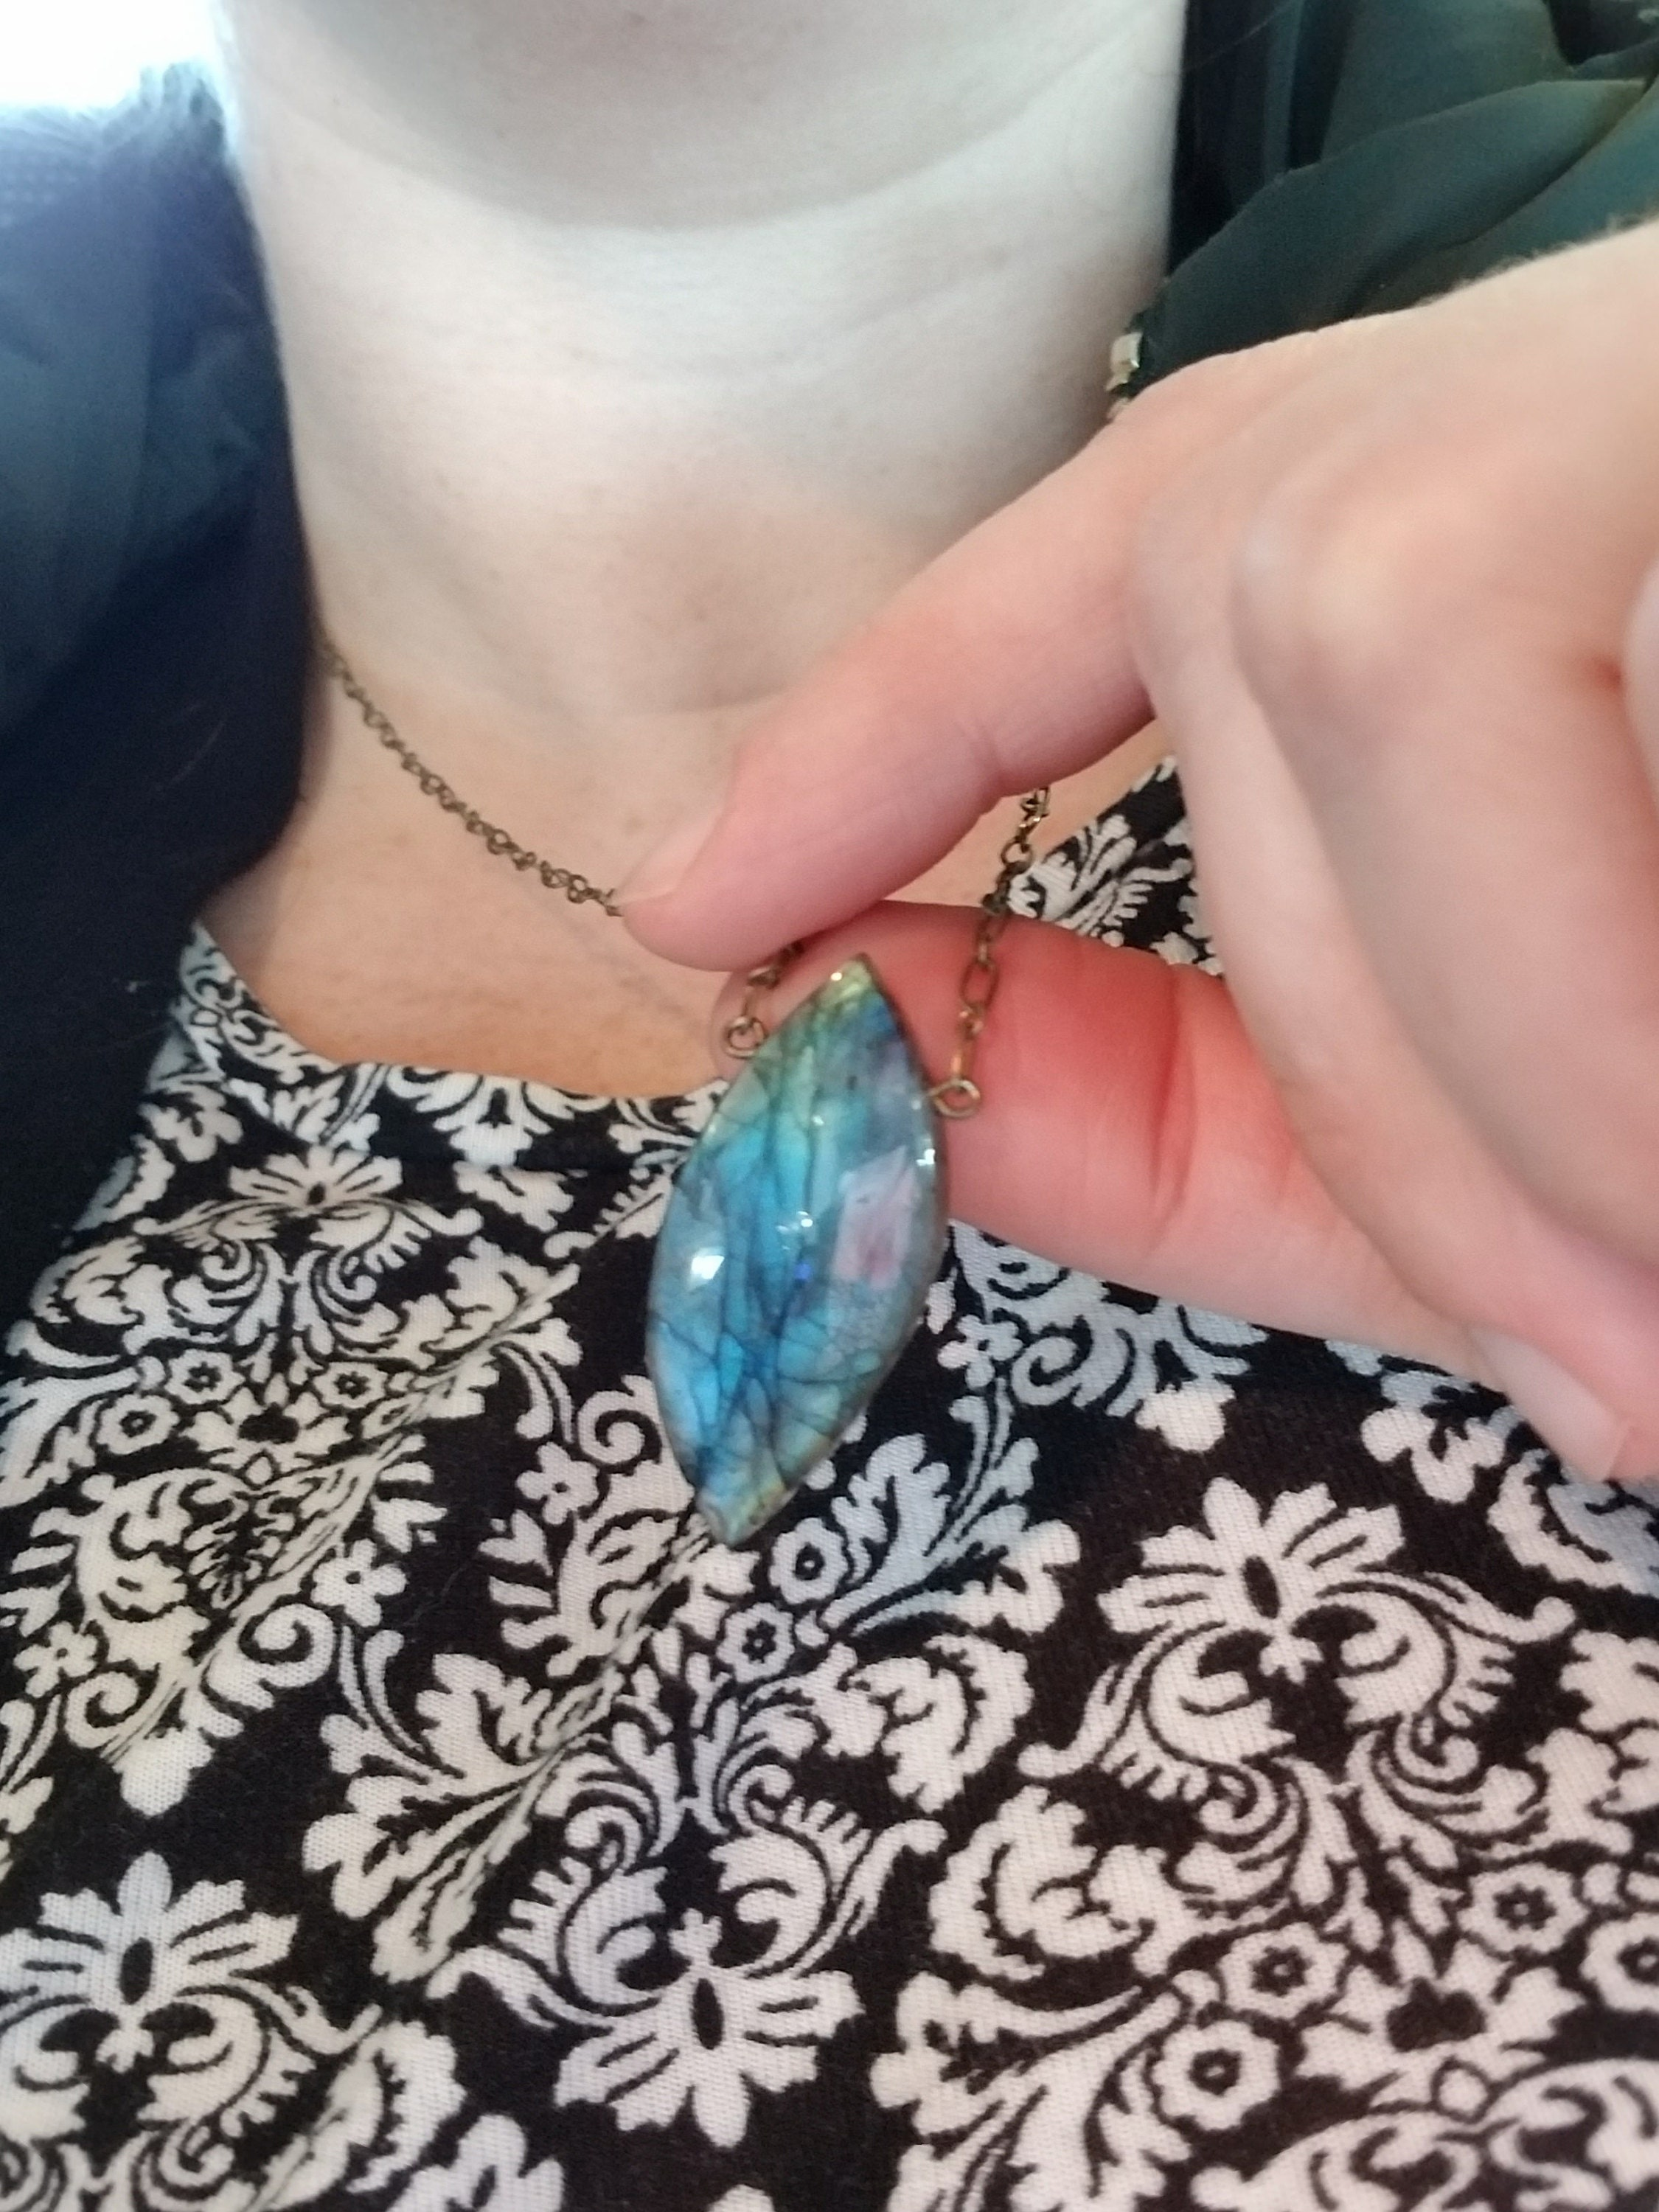 Caitlin Ring added a photo of their purchase